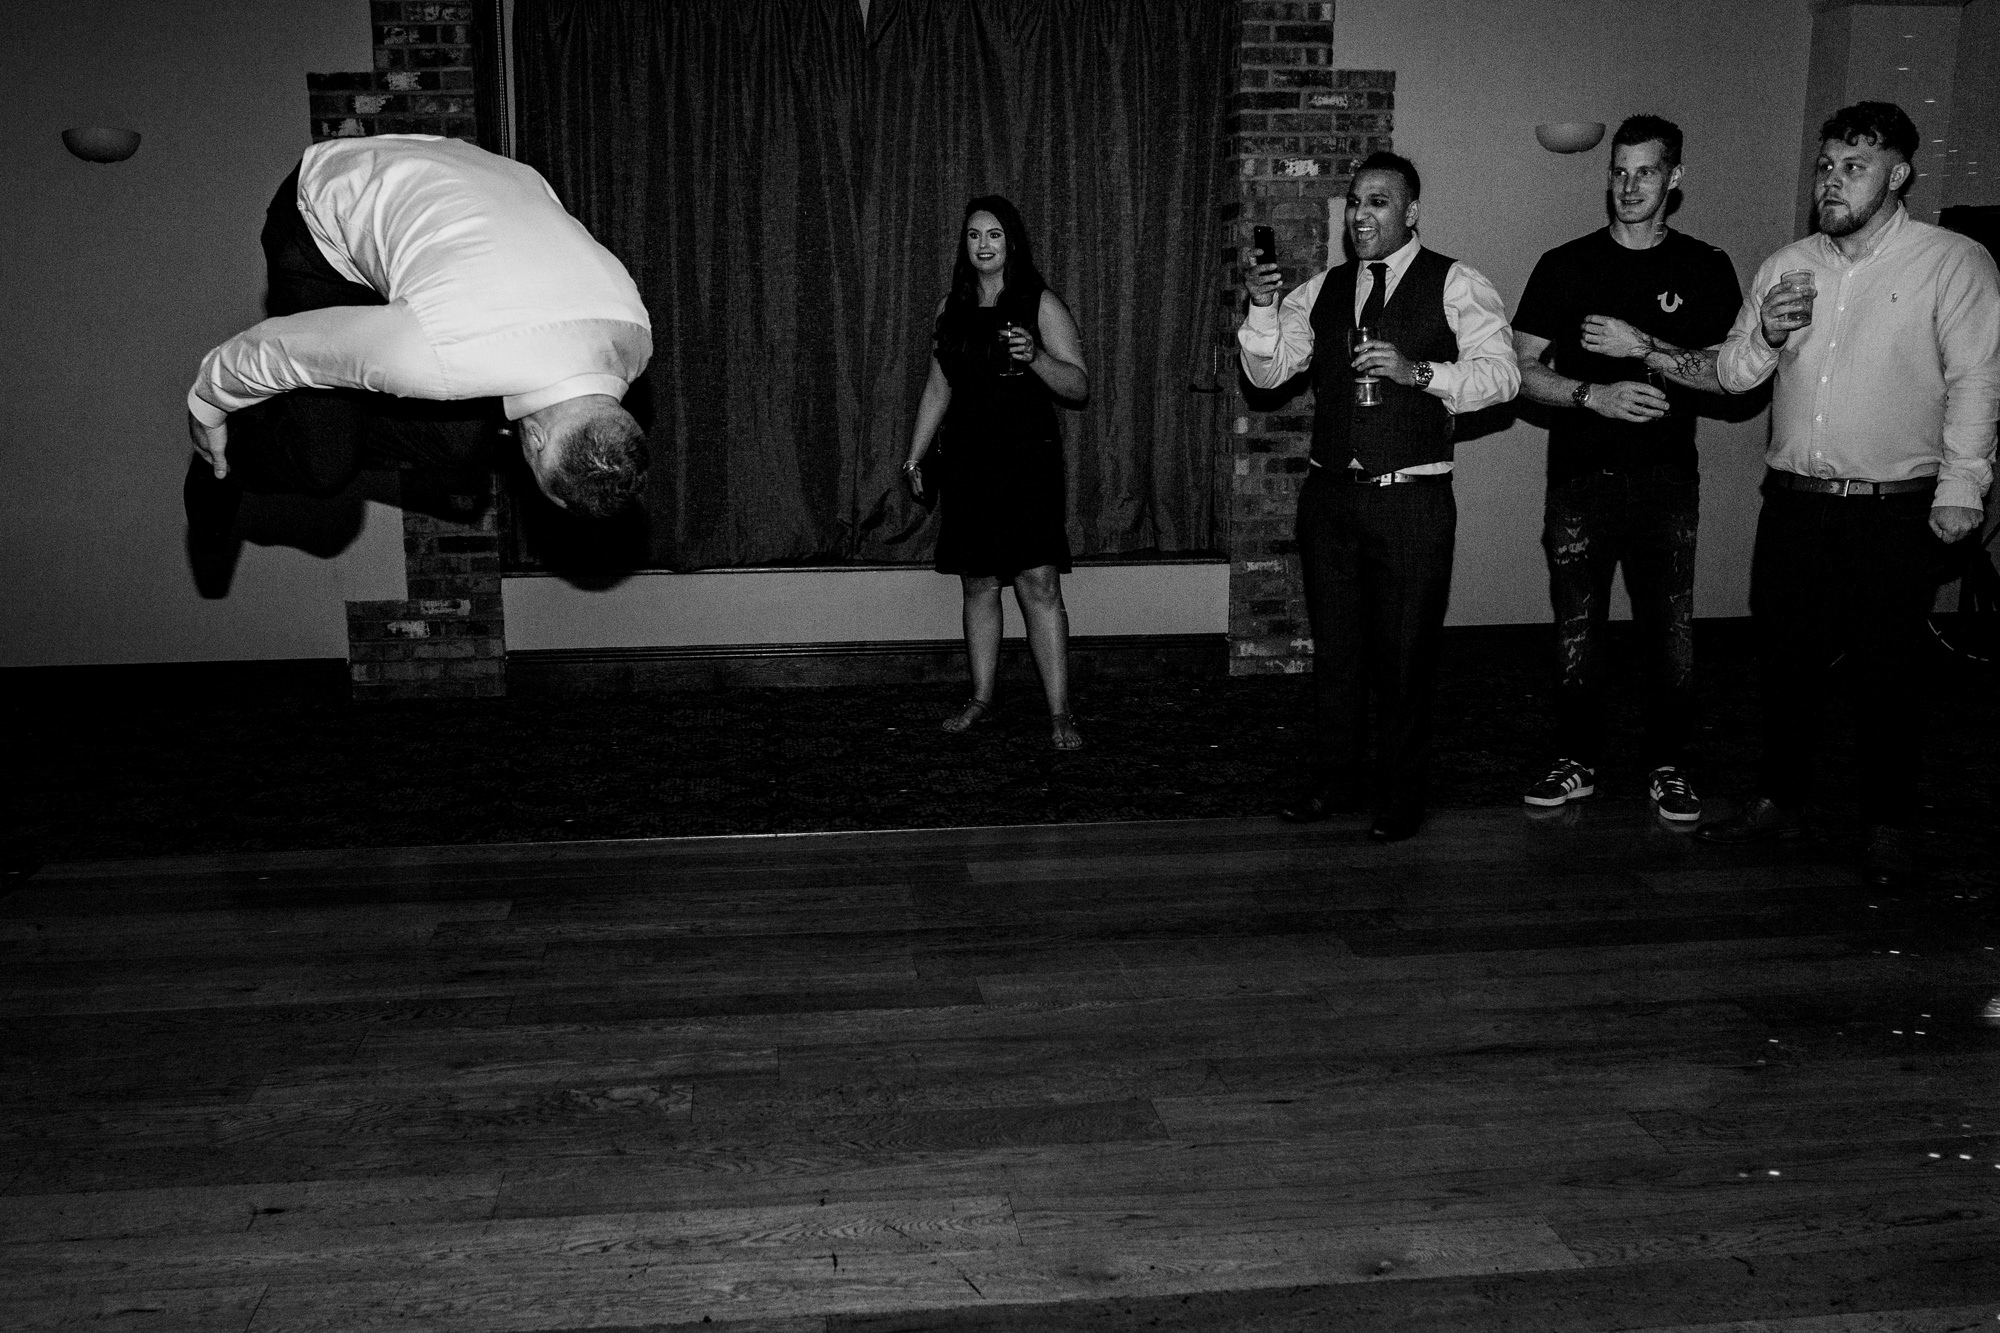 people look on as man does a flip on the dancefloor. huntsman inn wedding photography by emma and rich.